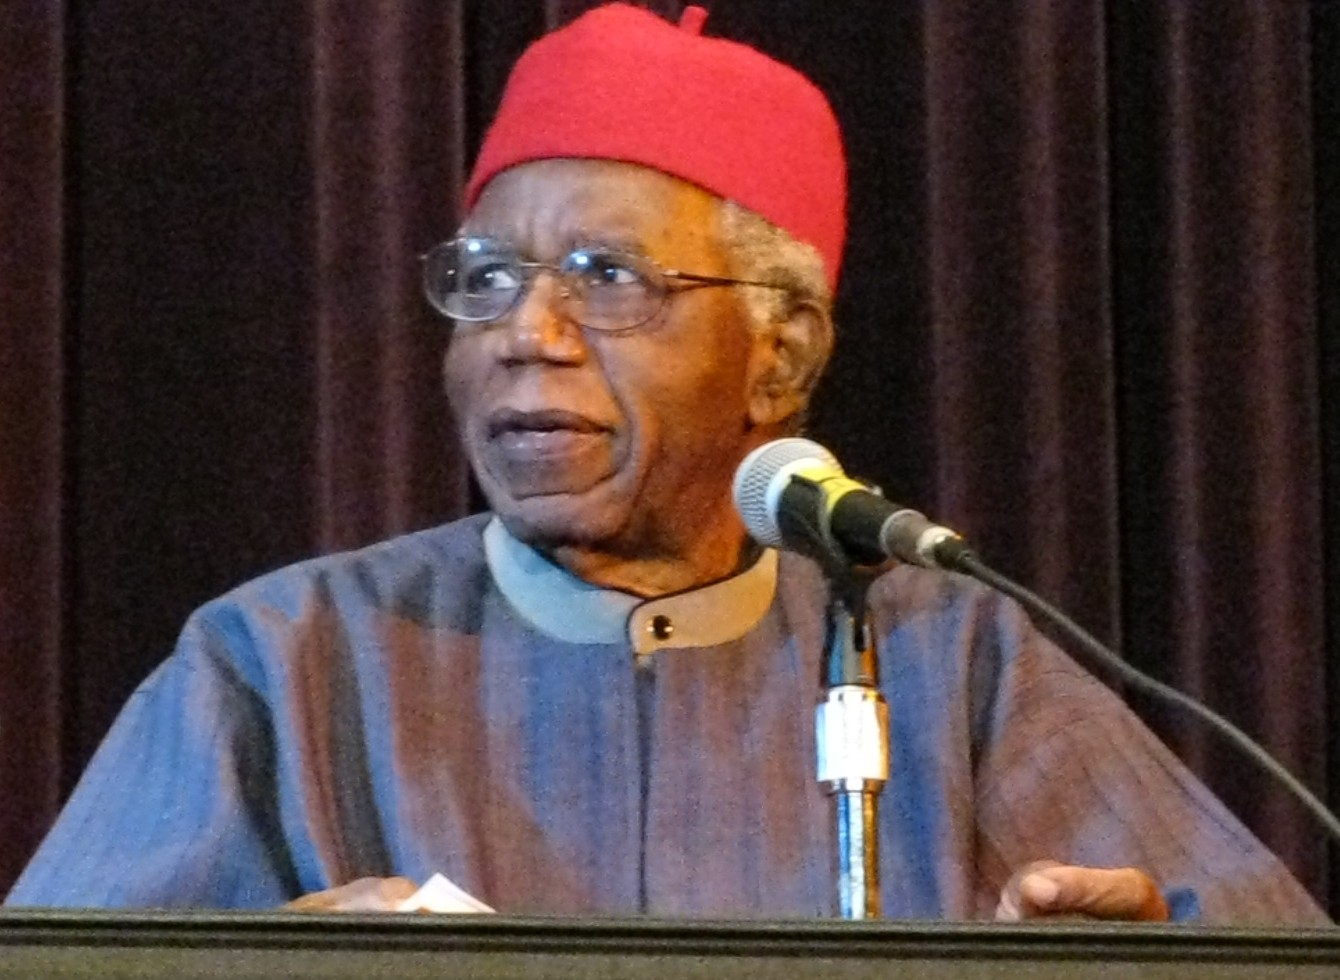 an analysis of the languages in things fall apart by chinua achebe Achebe favors traditional nigerian clothes and reminds one more of the priest in arrow of god than okonkwo in things fall apart his appearance is peaceful and his eyes wise his demeanor is modest, but when he begins to talk about literature and nigeria, he is transformed.